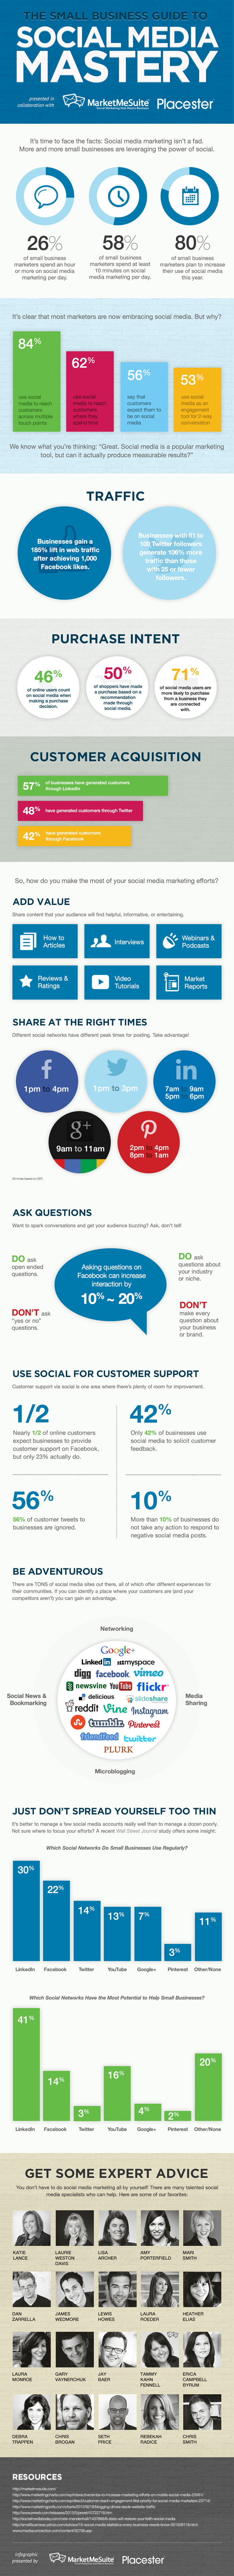 The Small Business Guide To Social Media Mastery [INFOGRAPHIC]